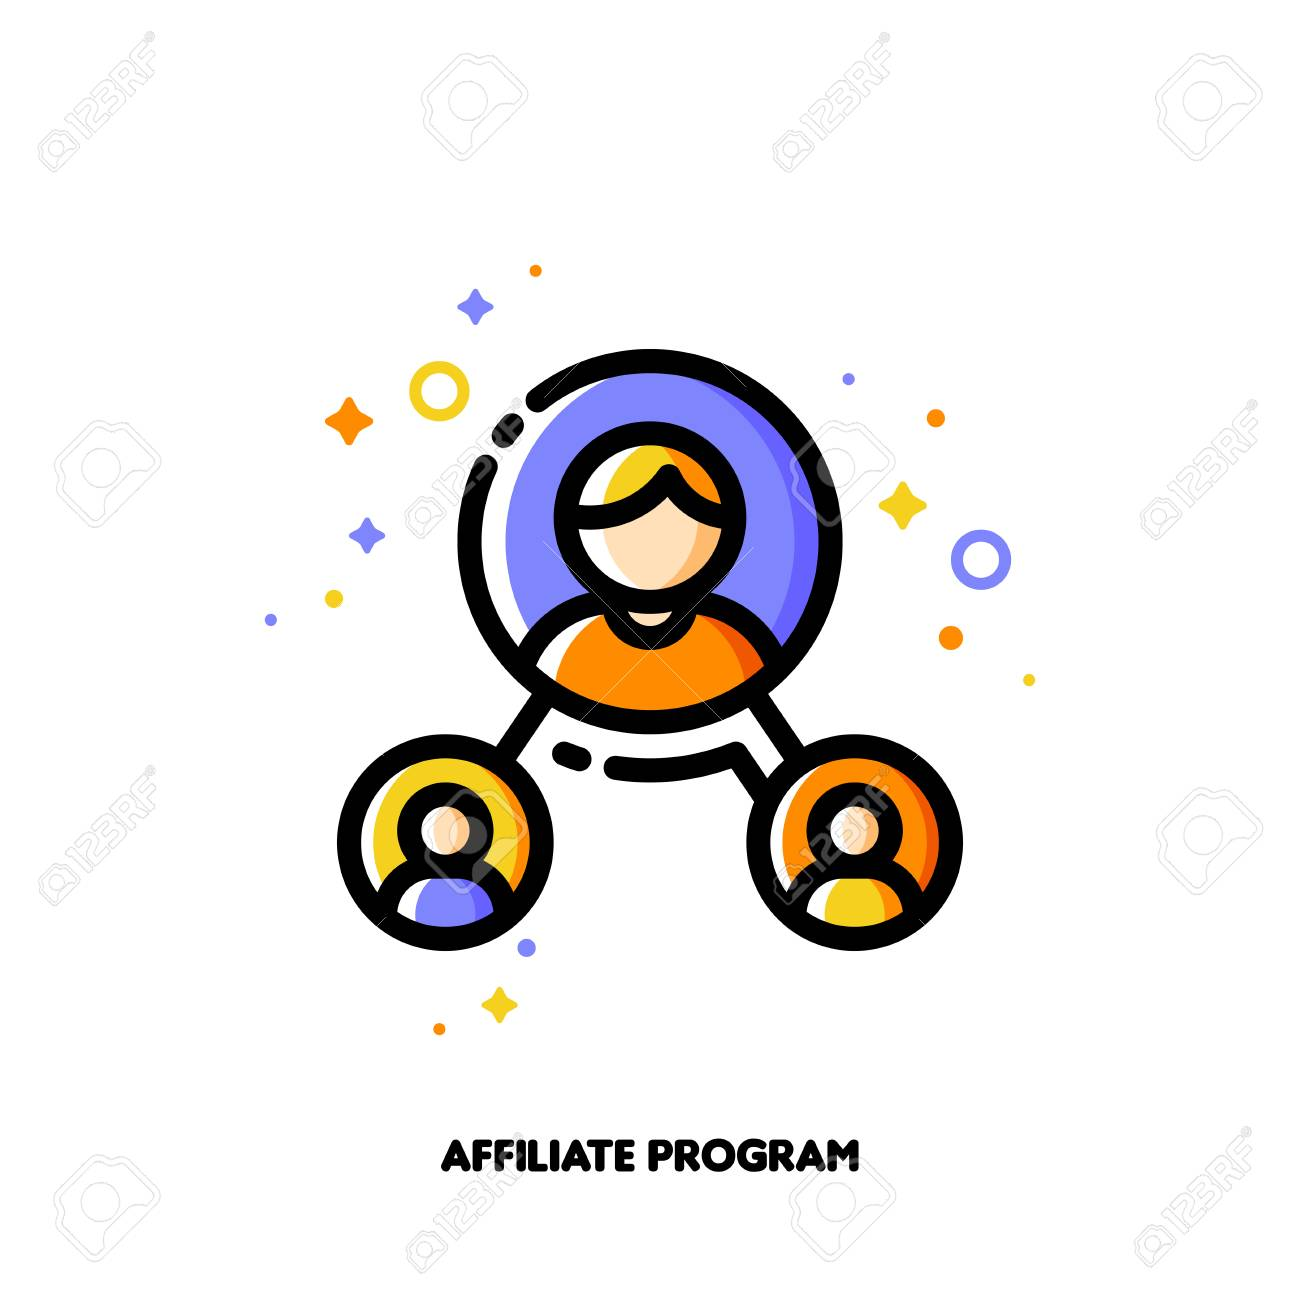 Affiliate marketing, partner program or referrals network concept